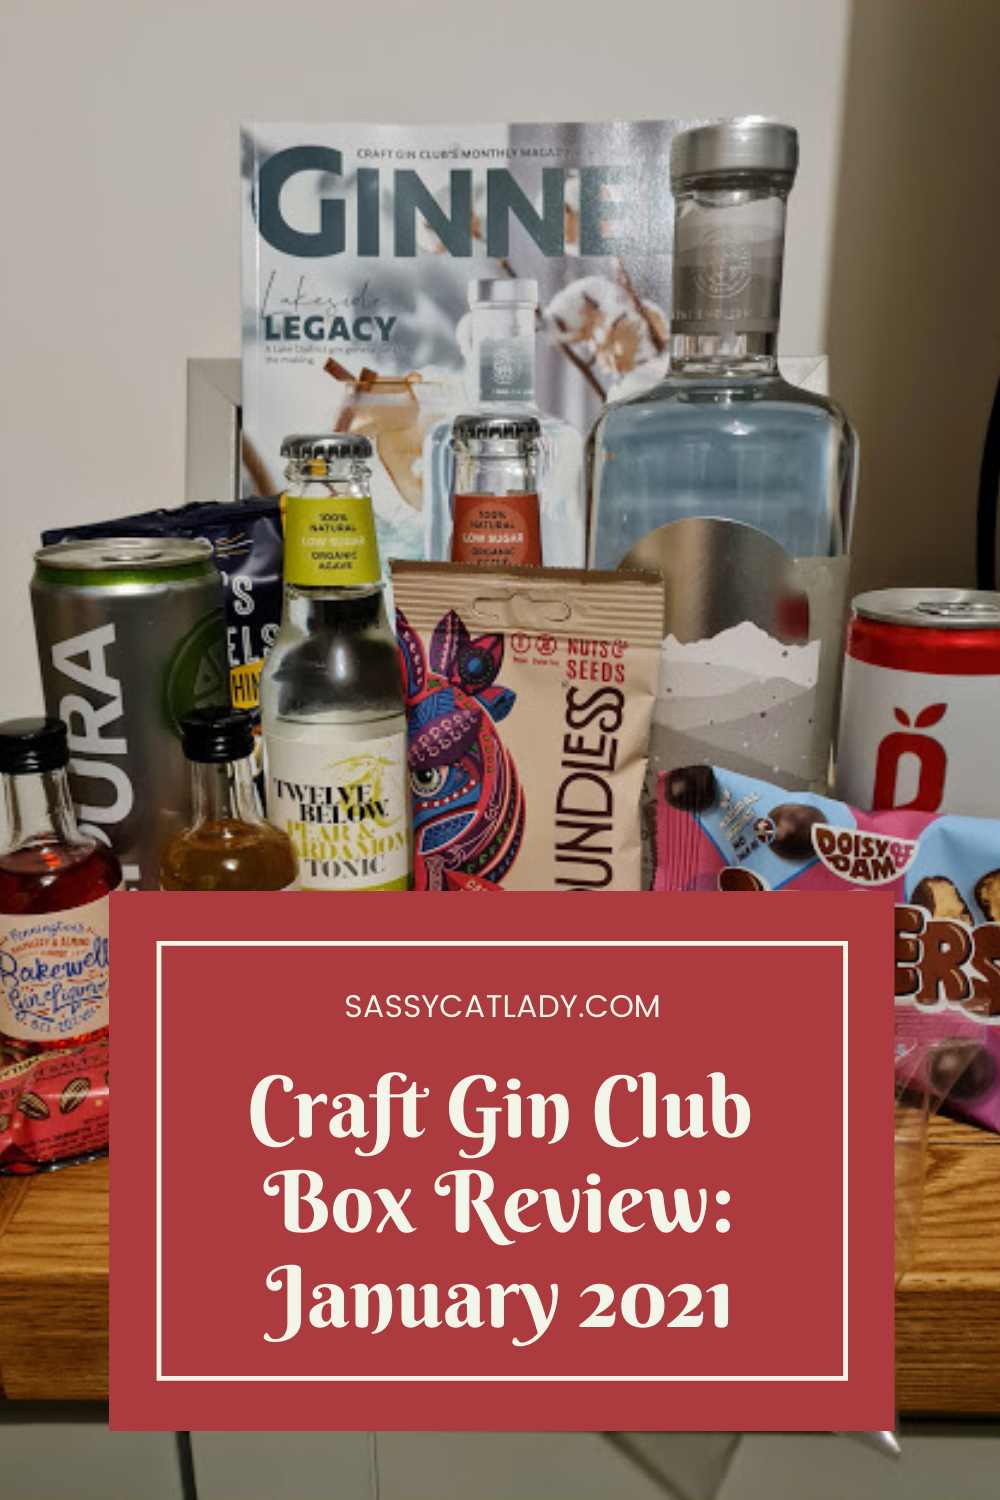 Craft Gin Club Box Review - January 2021